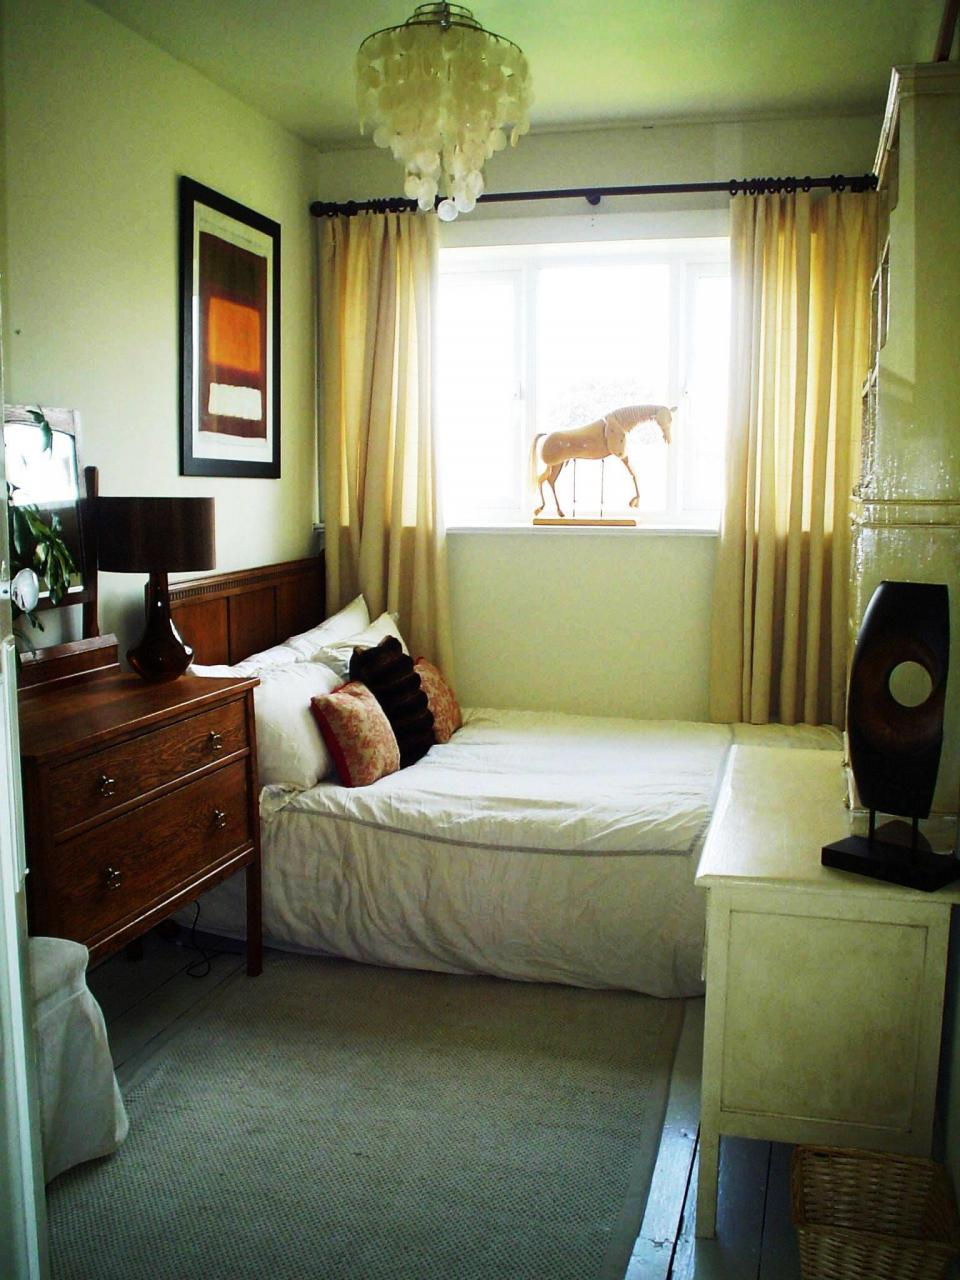 Small bedroom decorating ideas 3 home interior design ideas Small ...